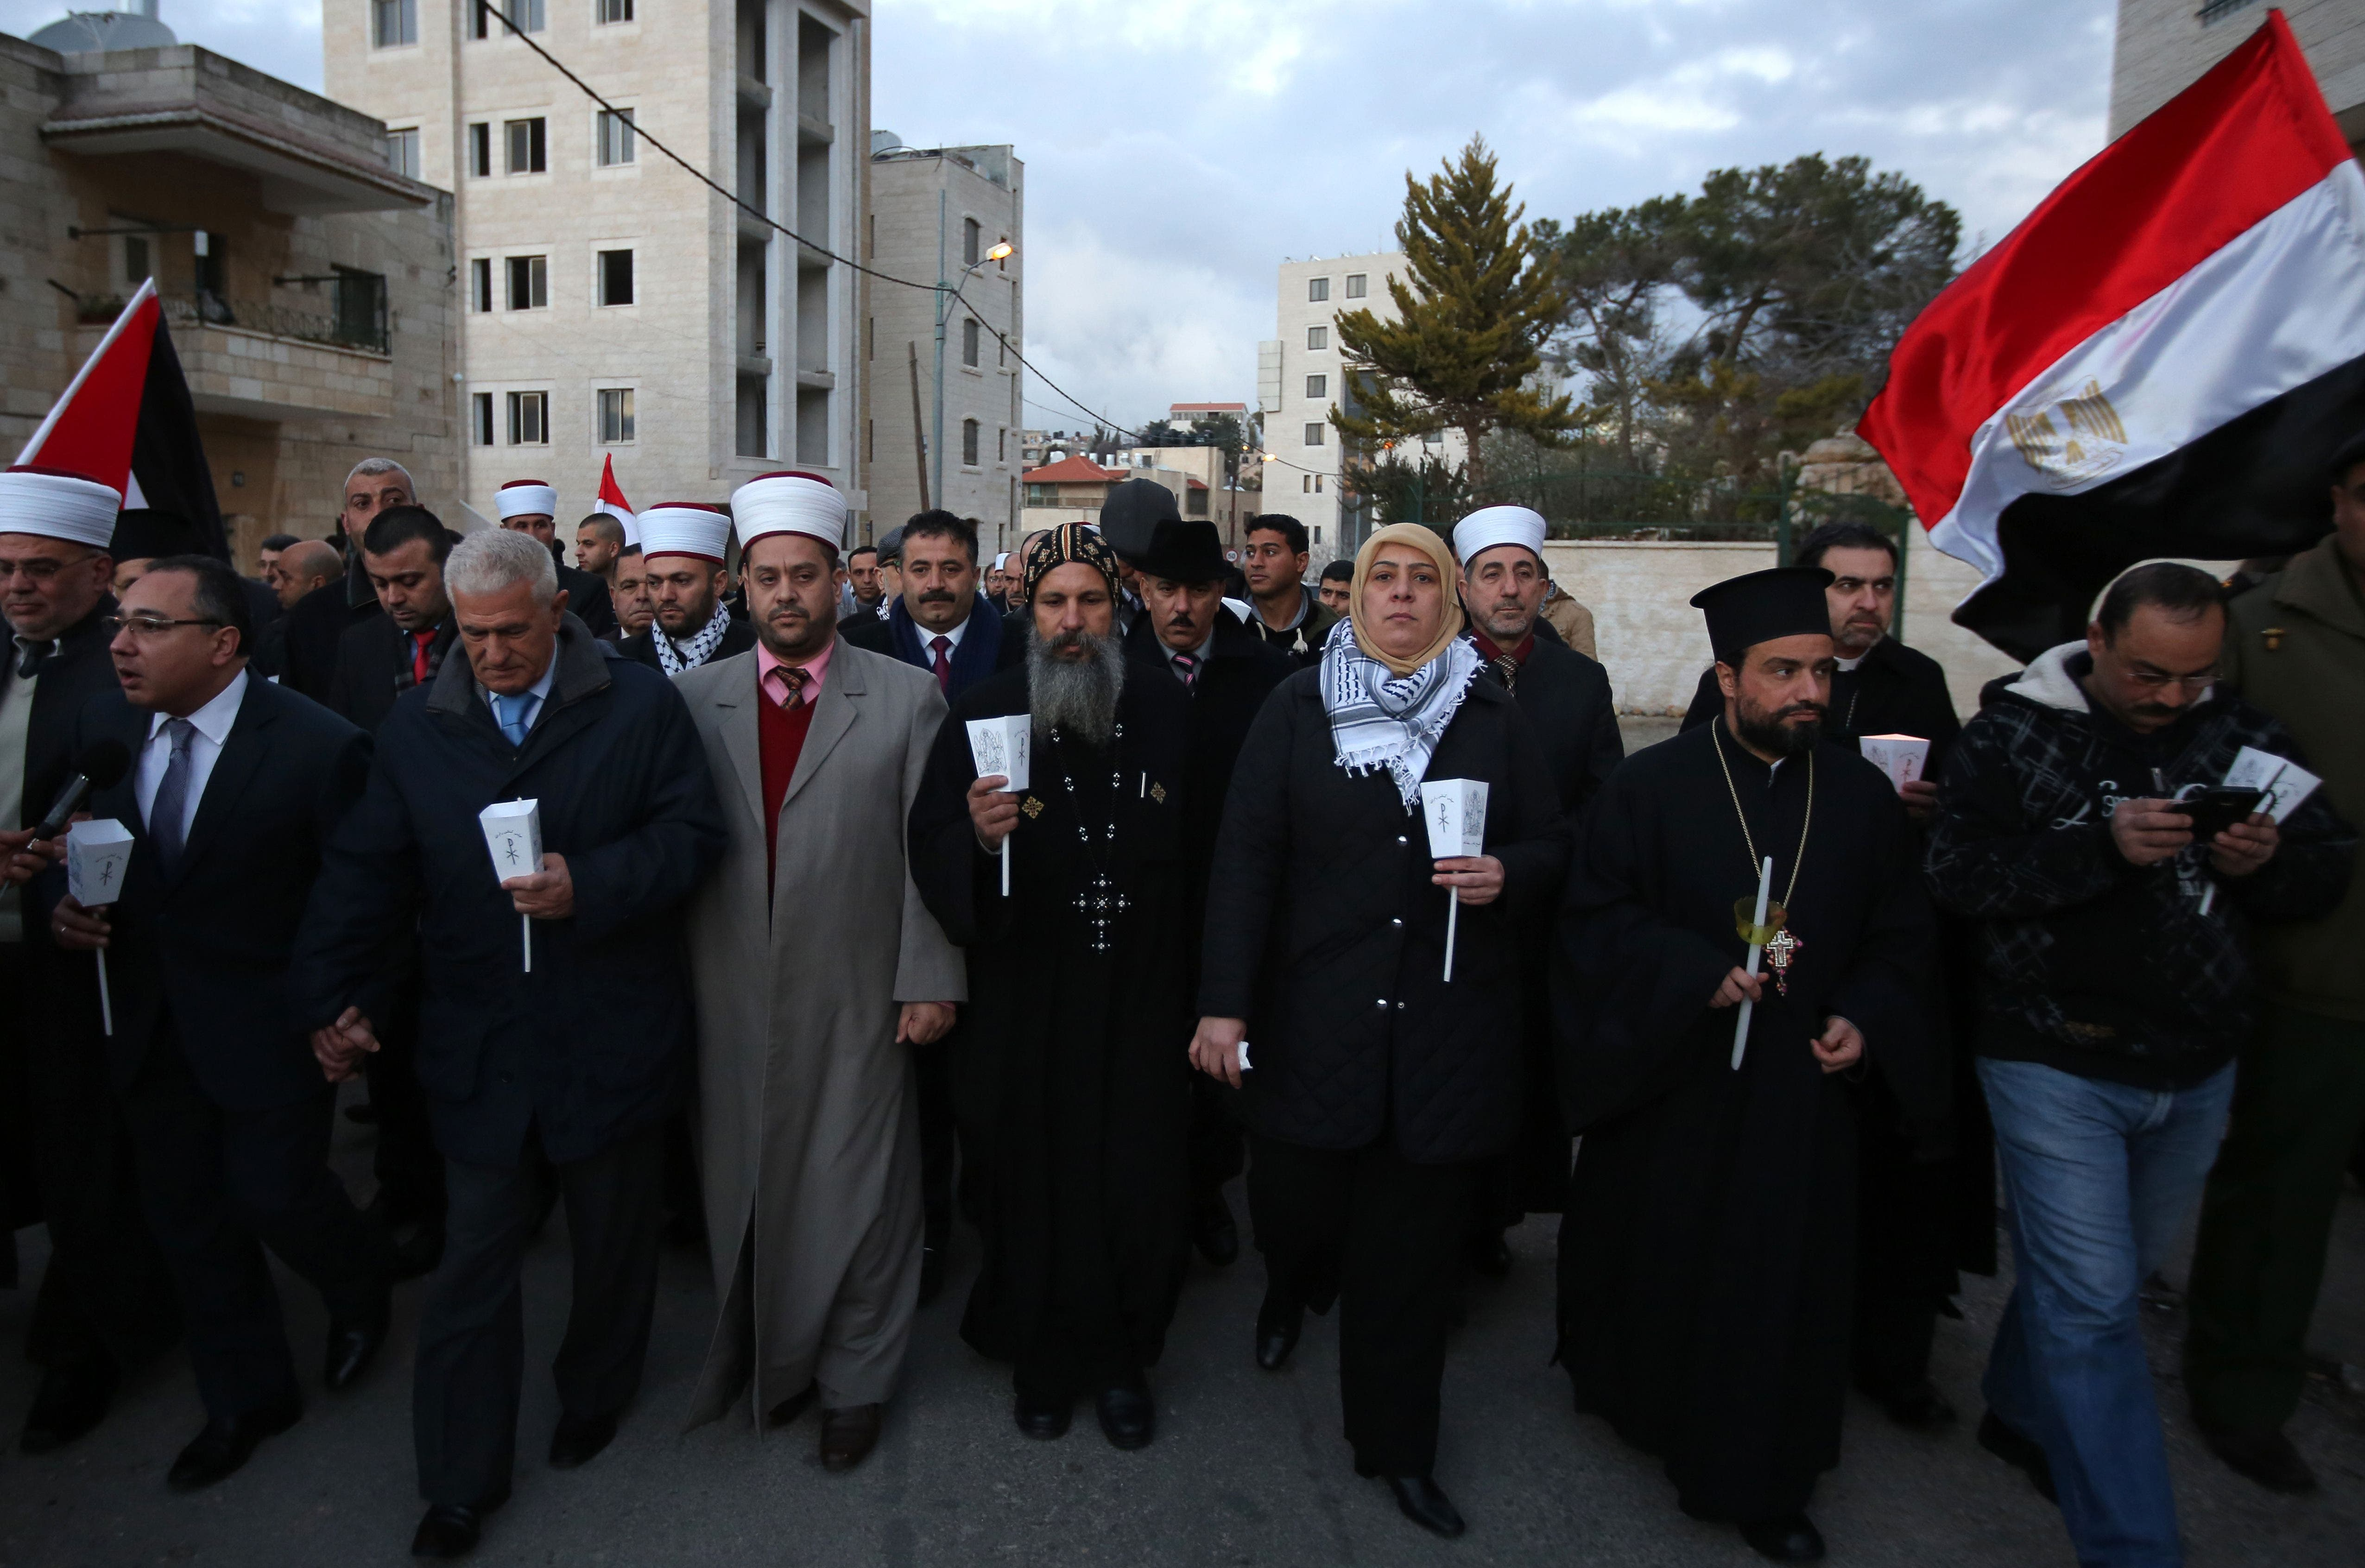 Christian and Muslim Palestinians take part in a rally in the West Bank of Ramallah on February 17, 2015, in memory of the Egyptian Coptic Christians murdered by Islamic State (IS) group militants in Libya. AFP